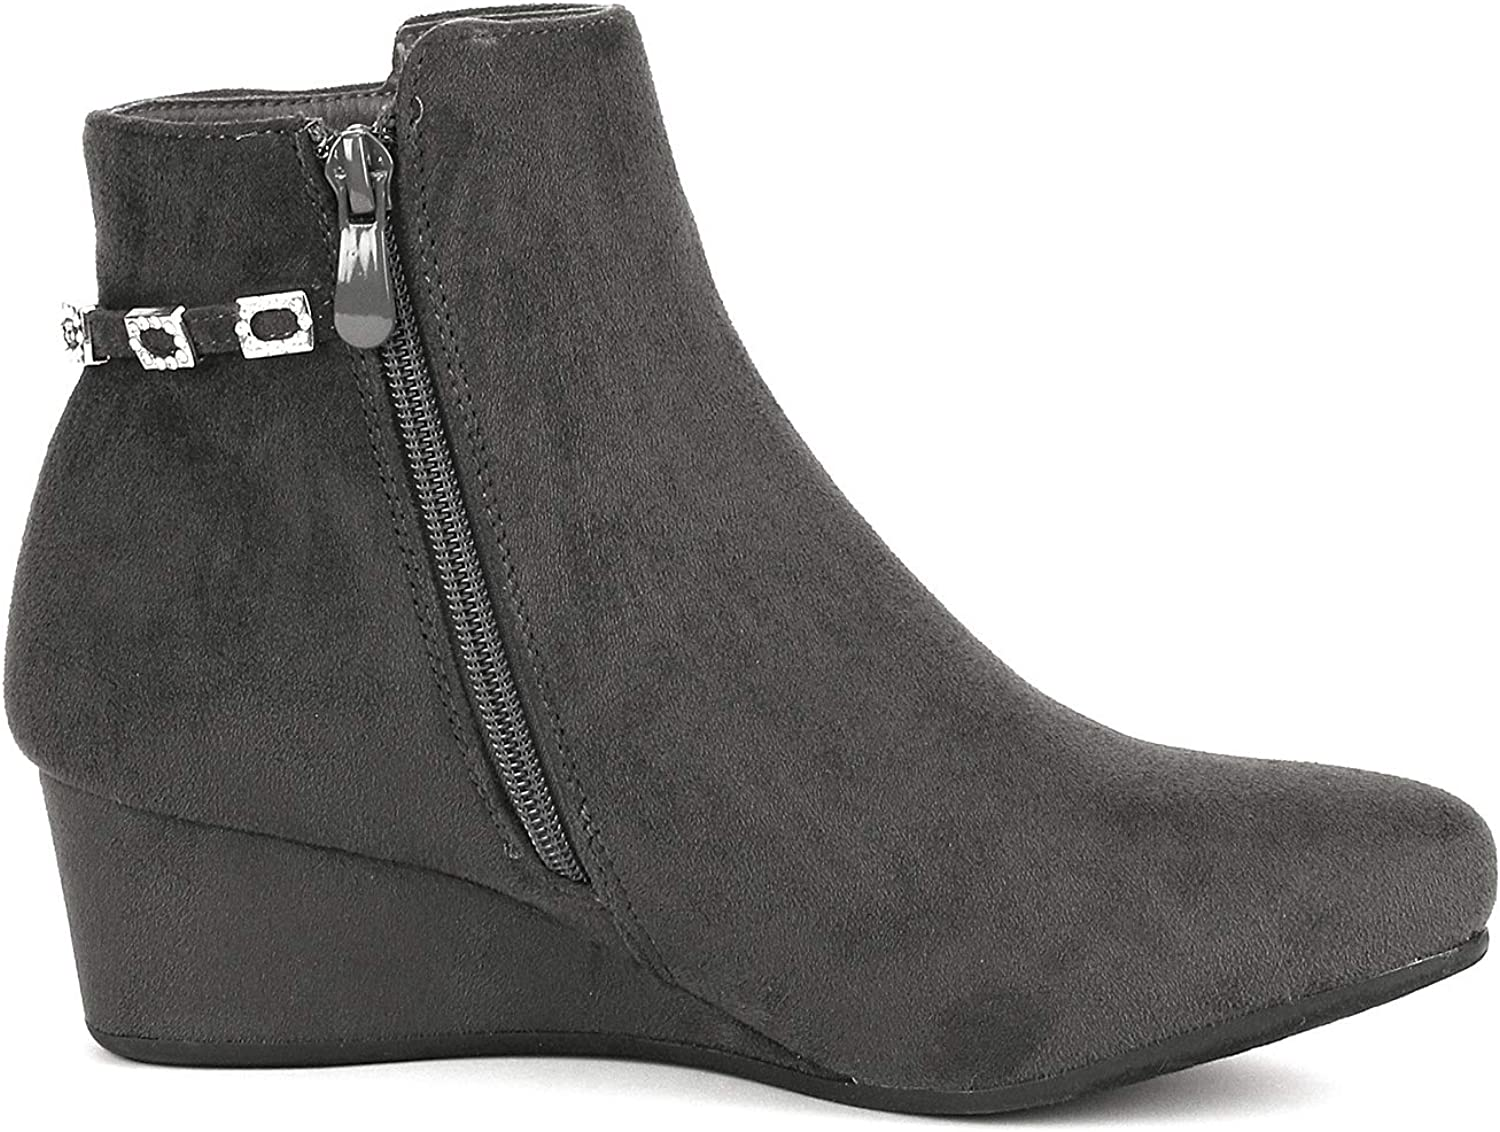 Ankle & Bootie Clothing, Shoes & Jewelry DREAM PAIRS Womens